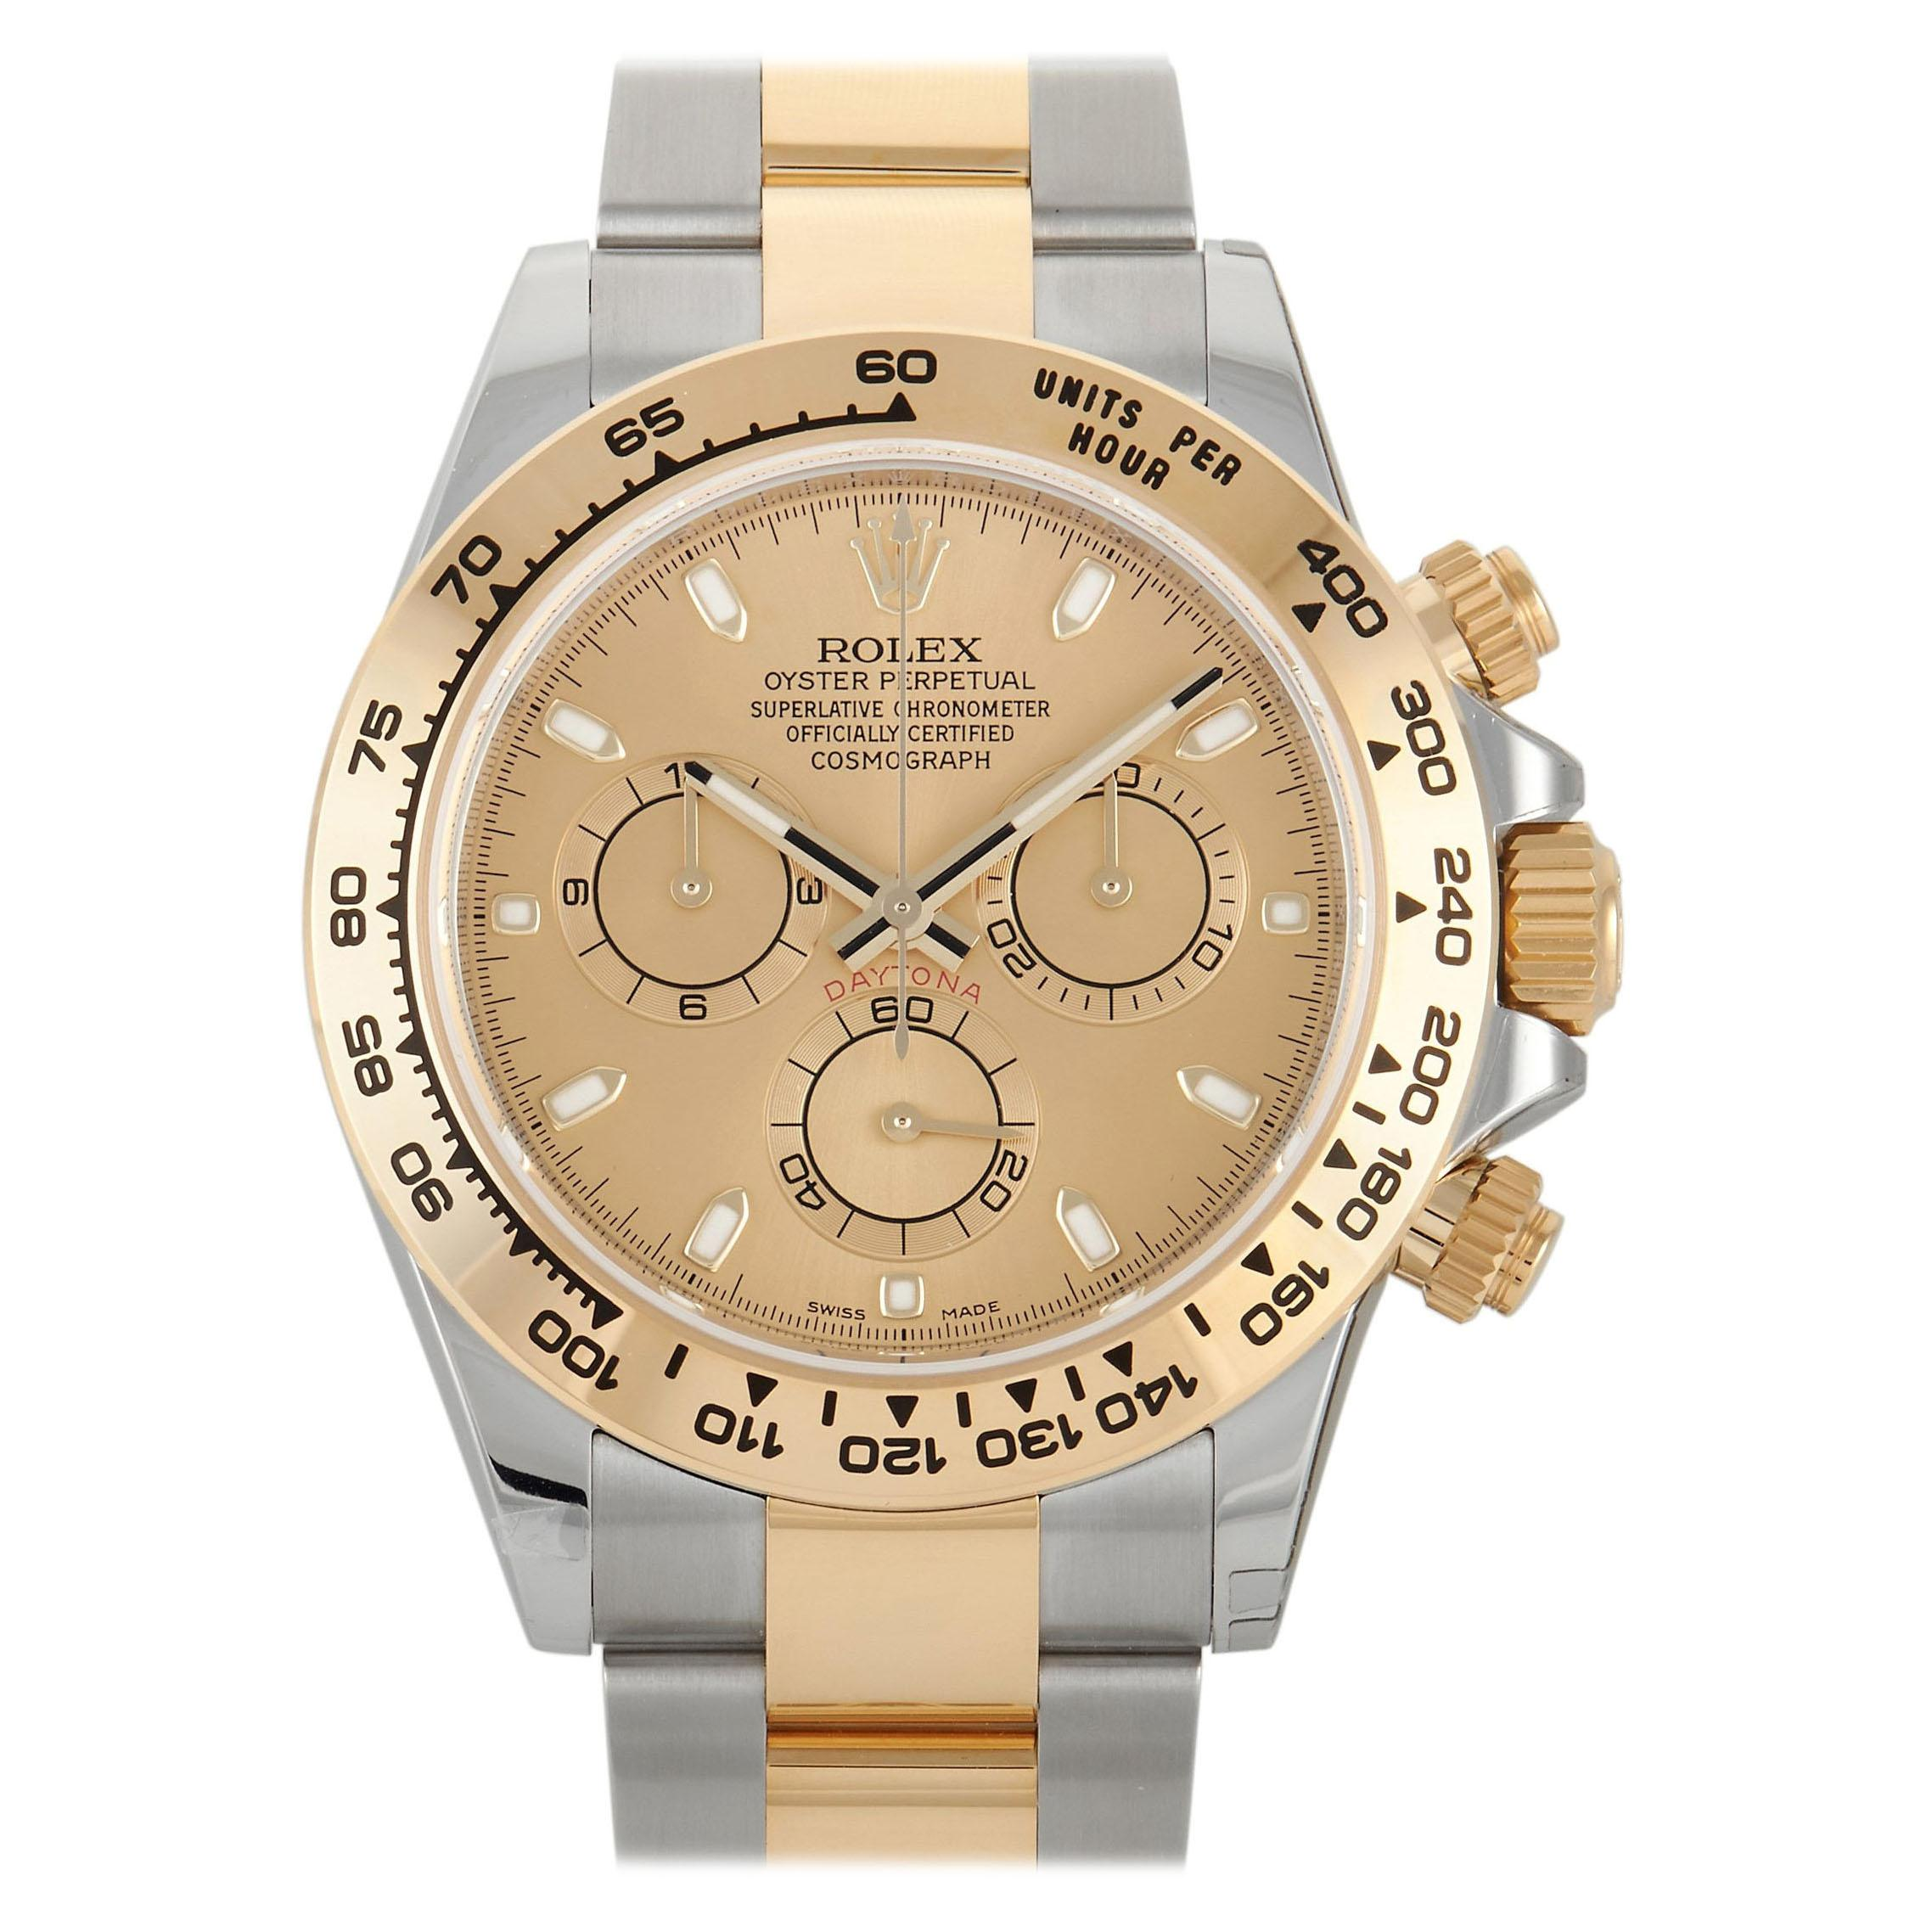 Rolex Cosmograph Daytona Two-Tone Champagne Dial Watch 116503-0003